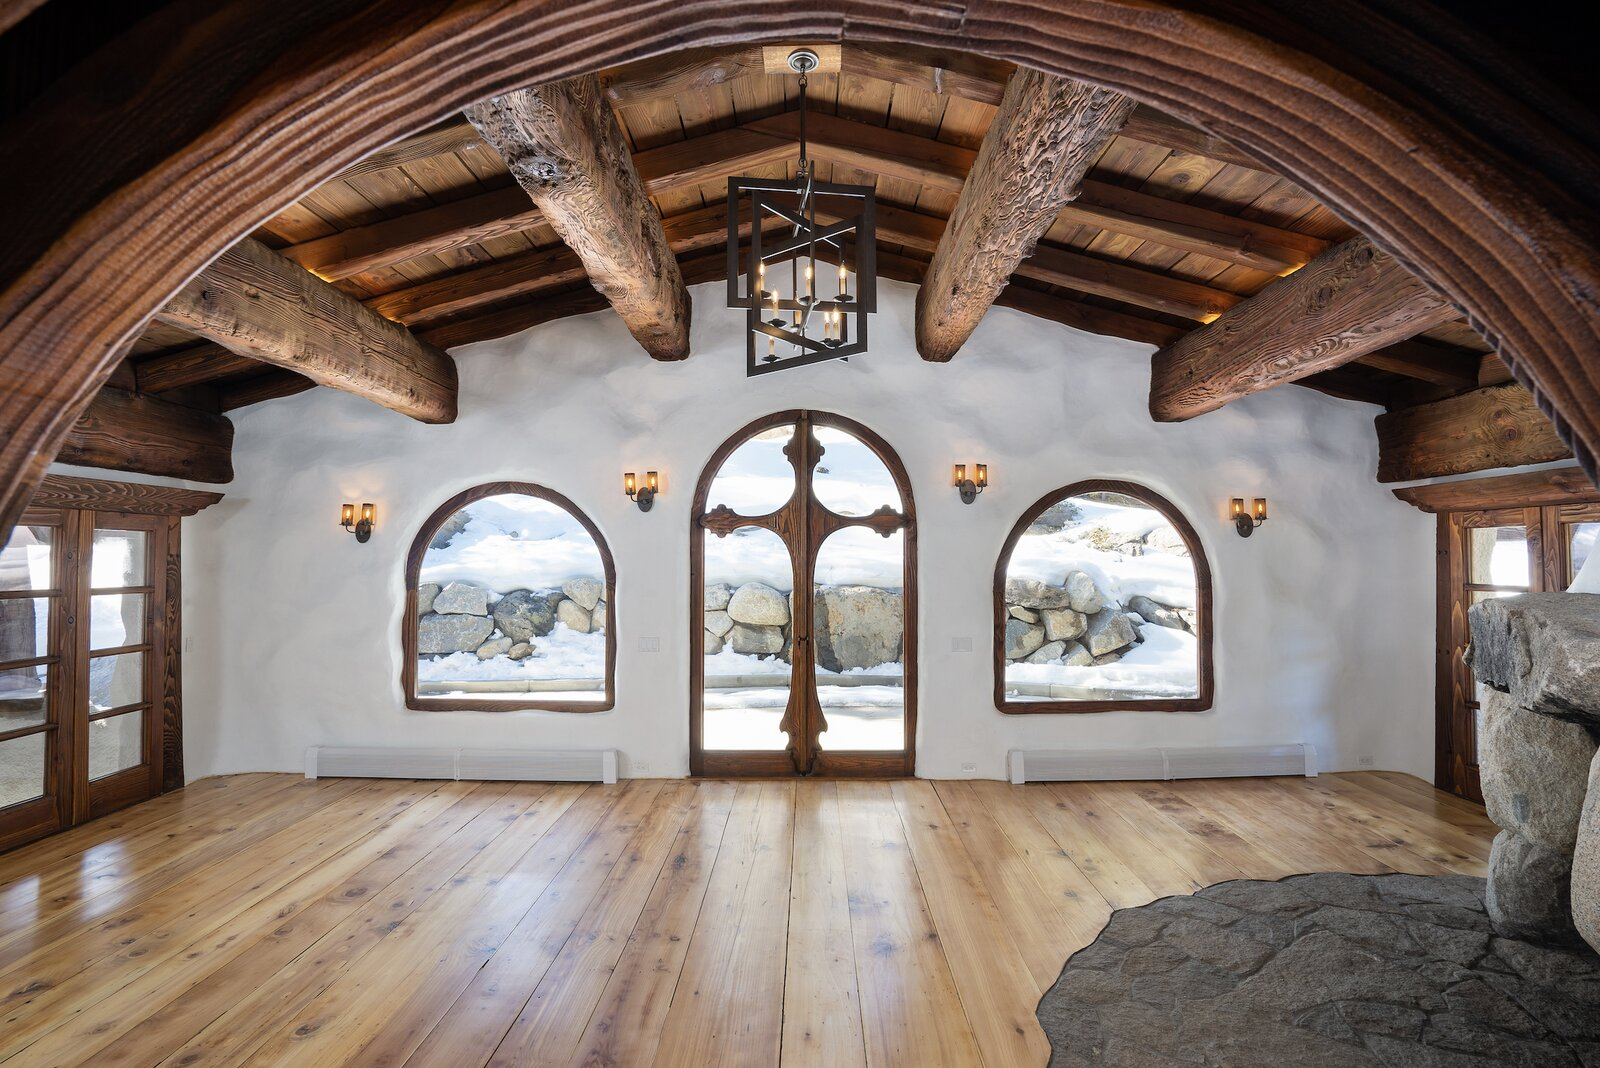 "Inside, hand-carved wooden details abound—including <span style=""font-family: Theinhardt, -apple-system, BlinkMacSystemFont, &quot;Segoe UI&quot;, Roboto, Oxygen-Sans, Ubuntu, Cantarell, &quot;Helvetica Neue&quot;, sans-serif;"">massive timber beams brought in from Oregon and milled on site during the home's original construction. Other details include </span>  Photo 2 of 15 in Listed for $2.65M, This Bavarian-Style ""Snow Haus"" Near Lake Tahoe Is the Perfect Alpine Escape"